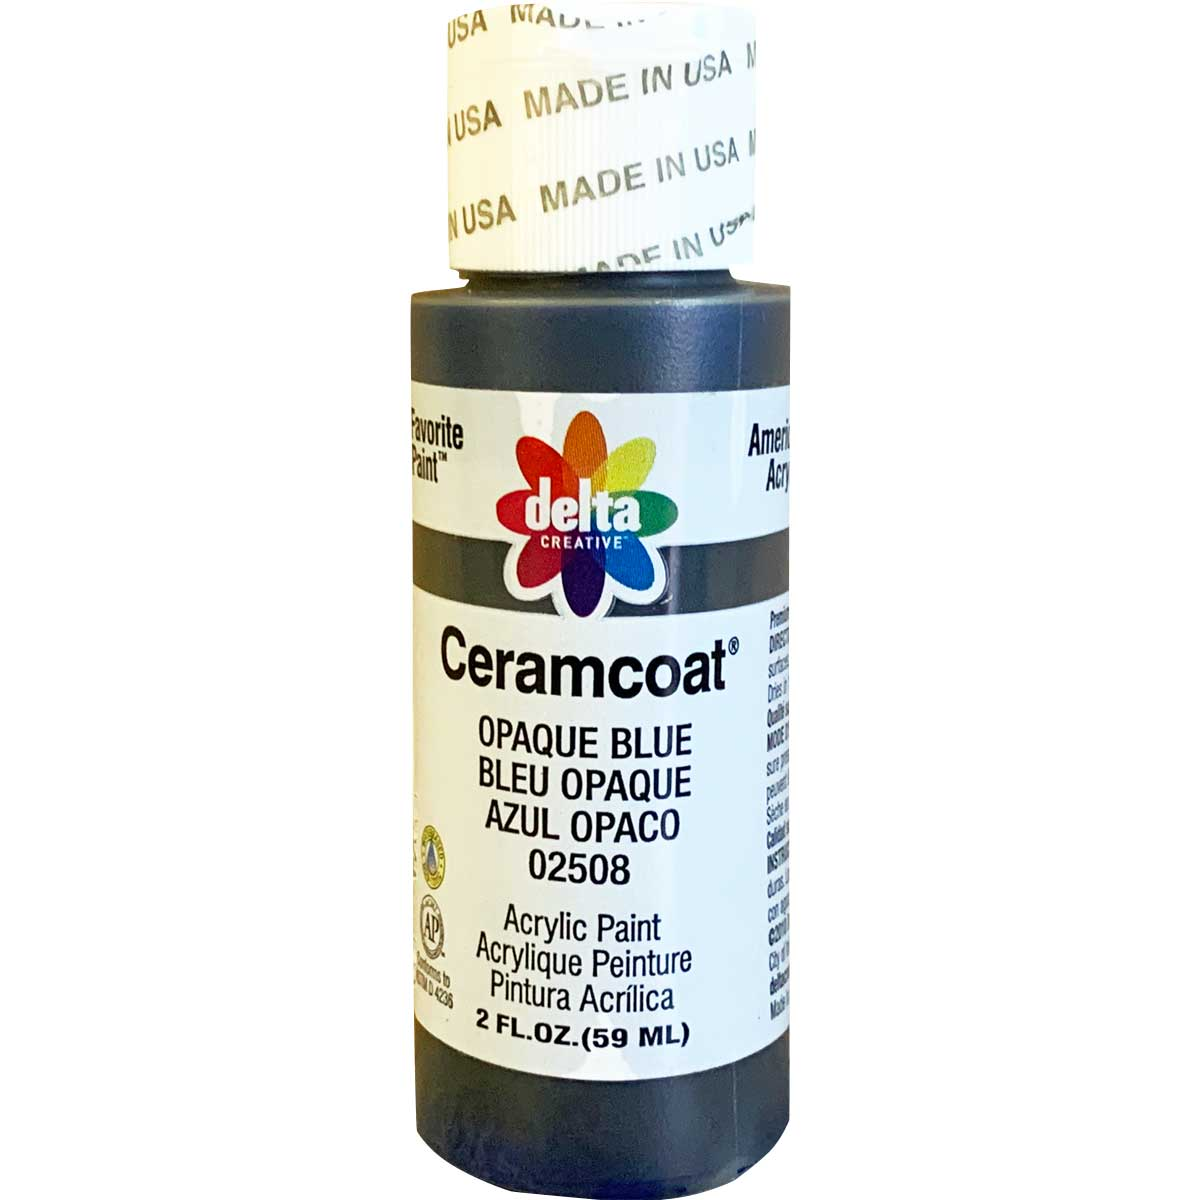 Delta Ceramcoat ® Acrylic Paint - Opaque Blue, 2 oz. - 025080202W